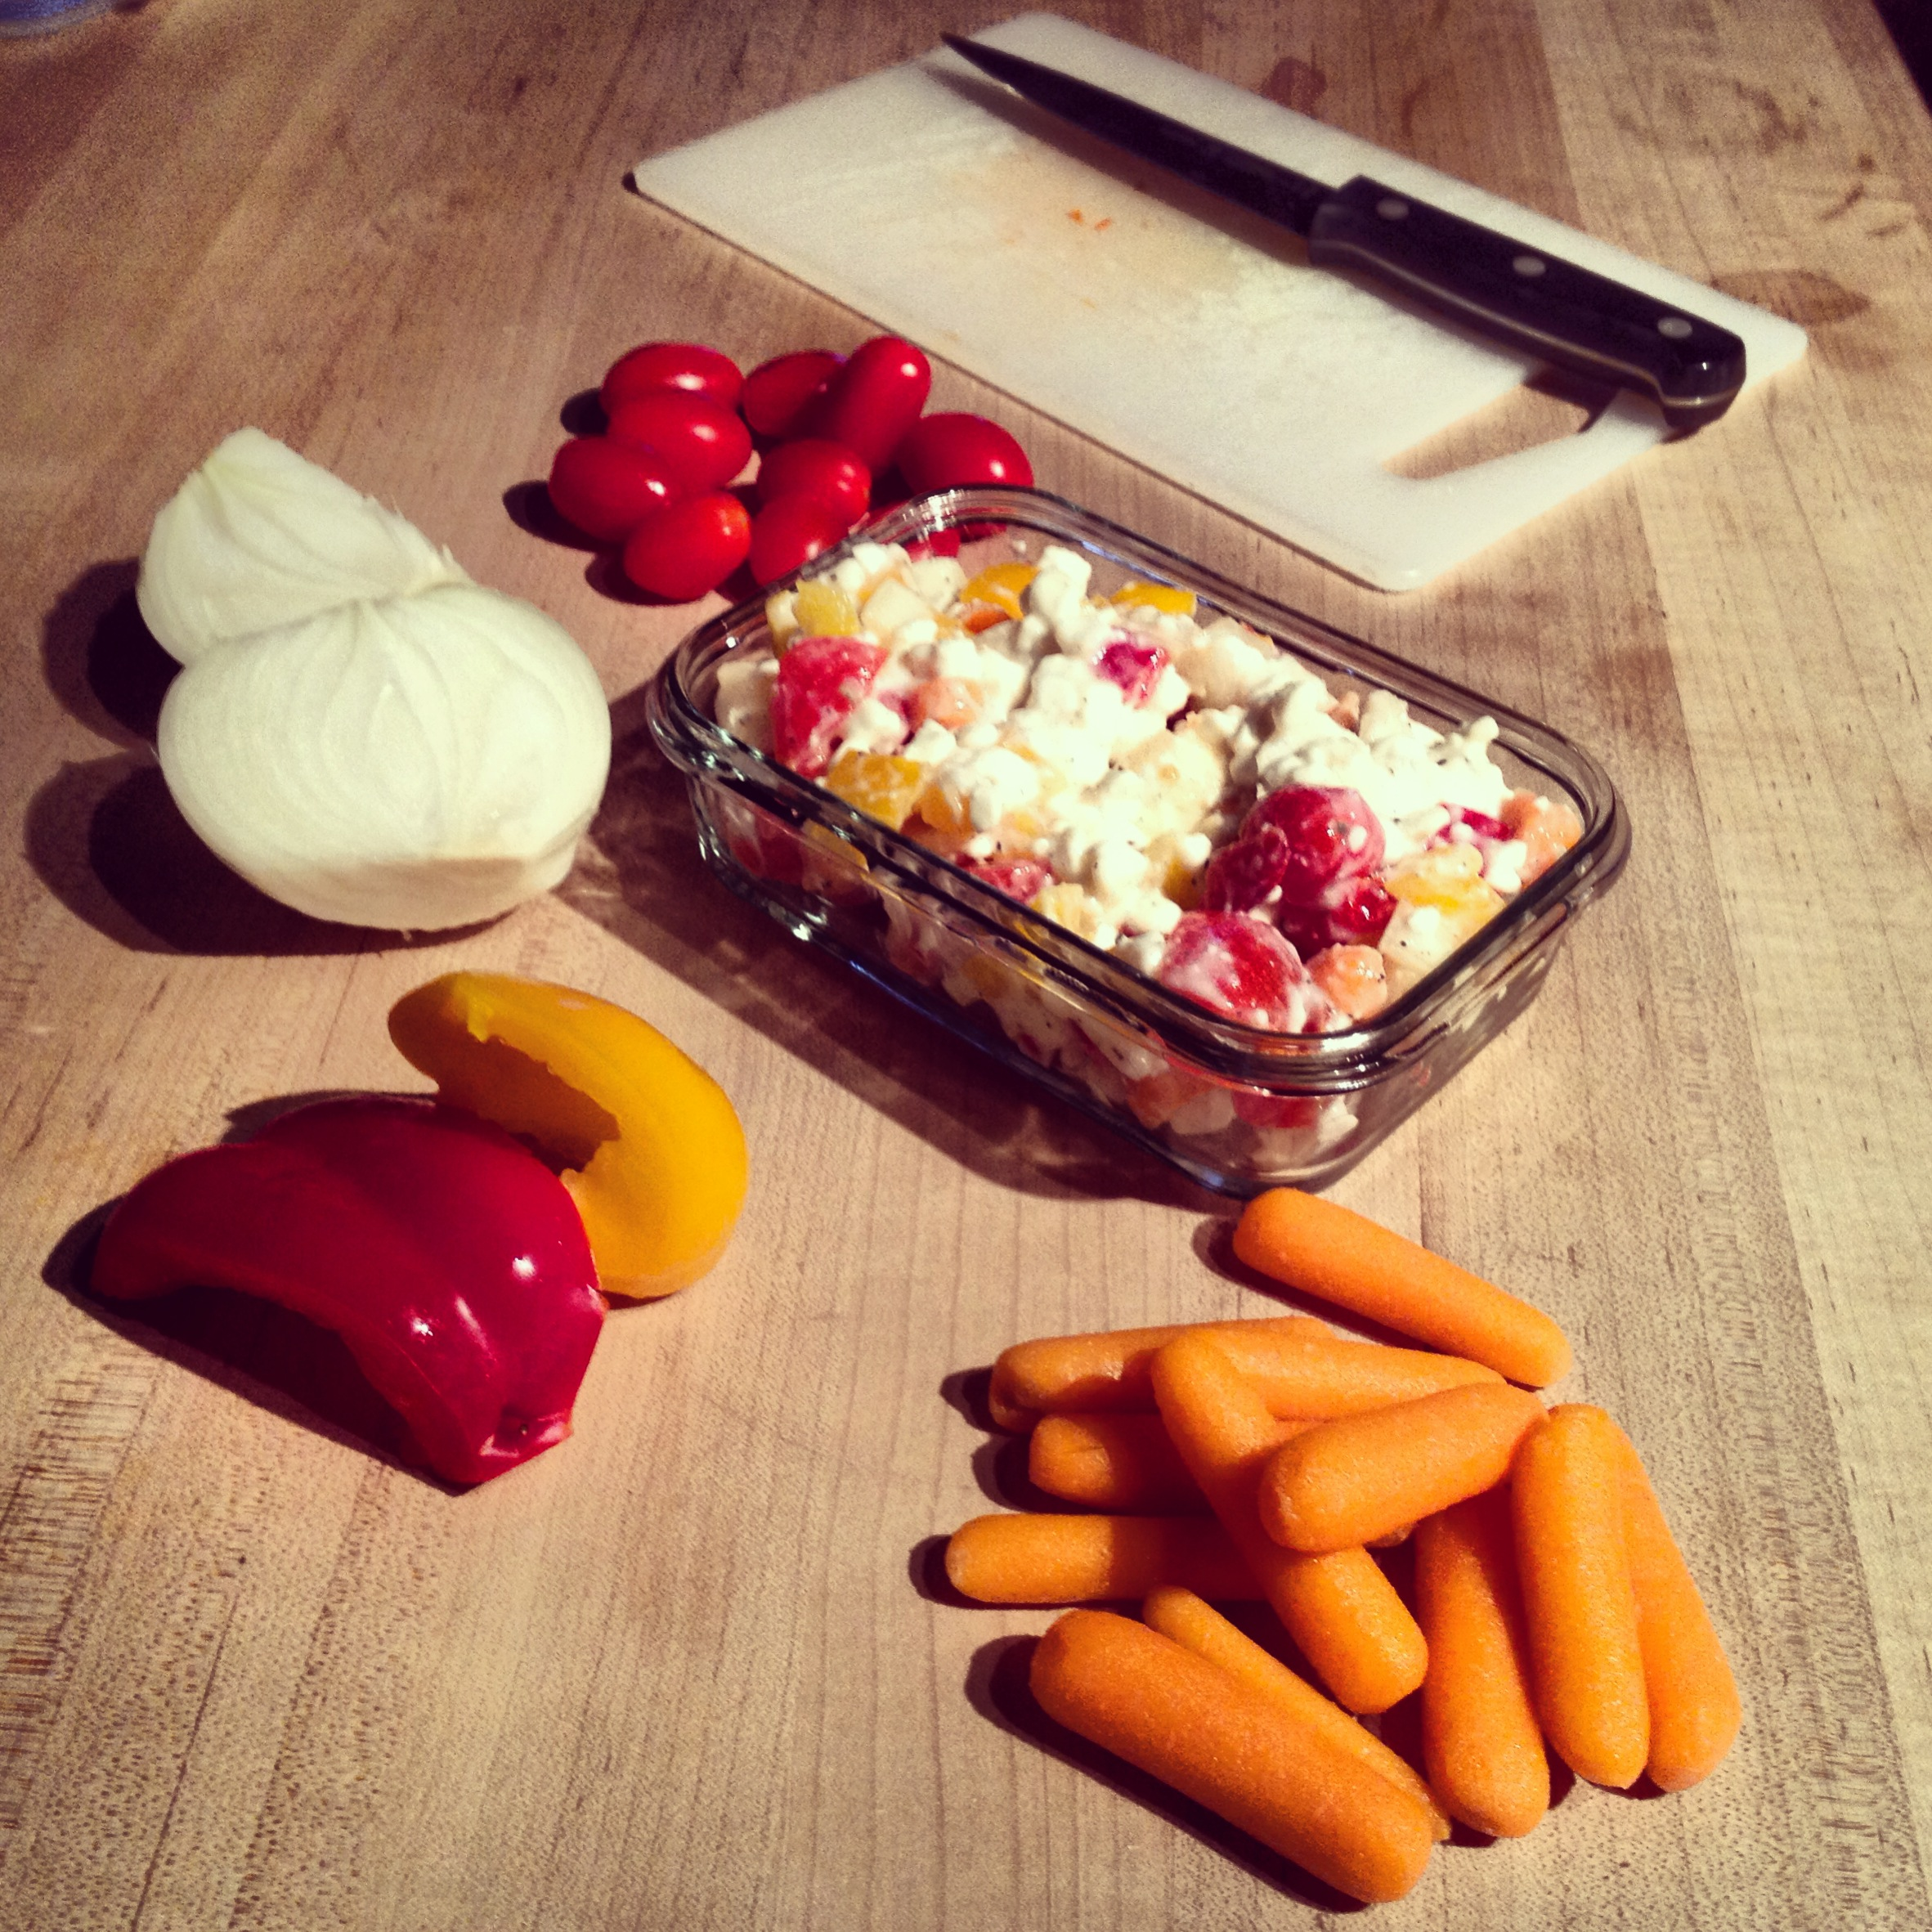 Meal planning for tomorrow: savoury cottage cheese